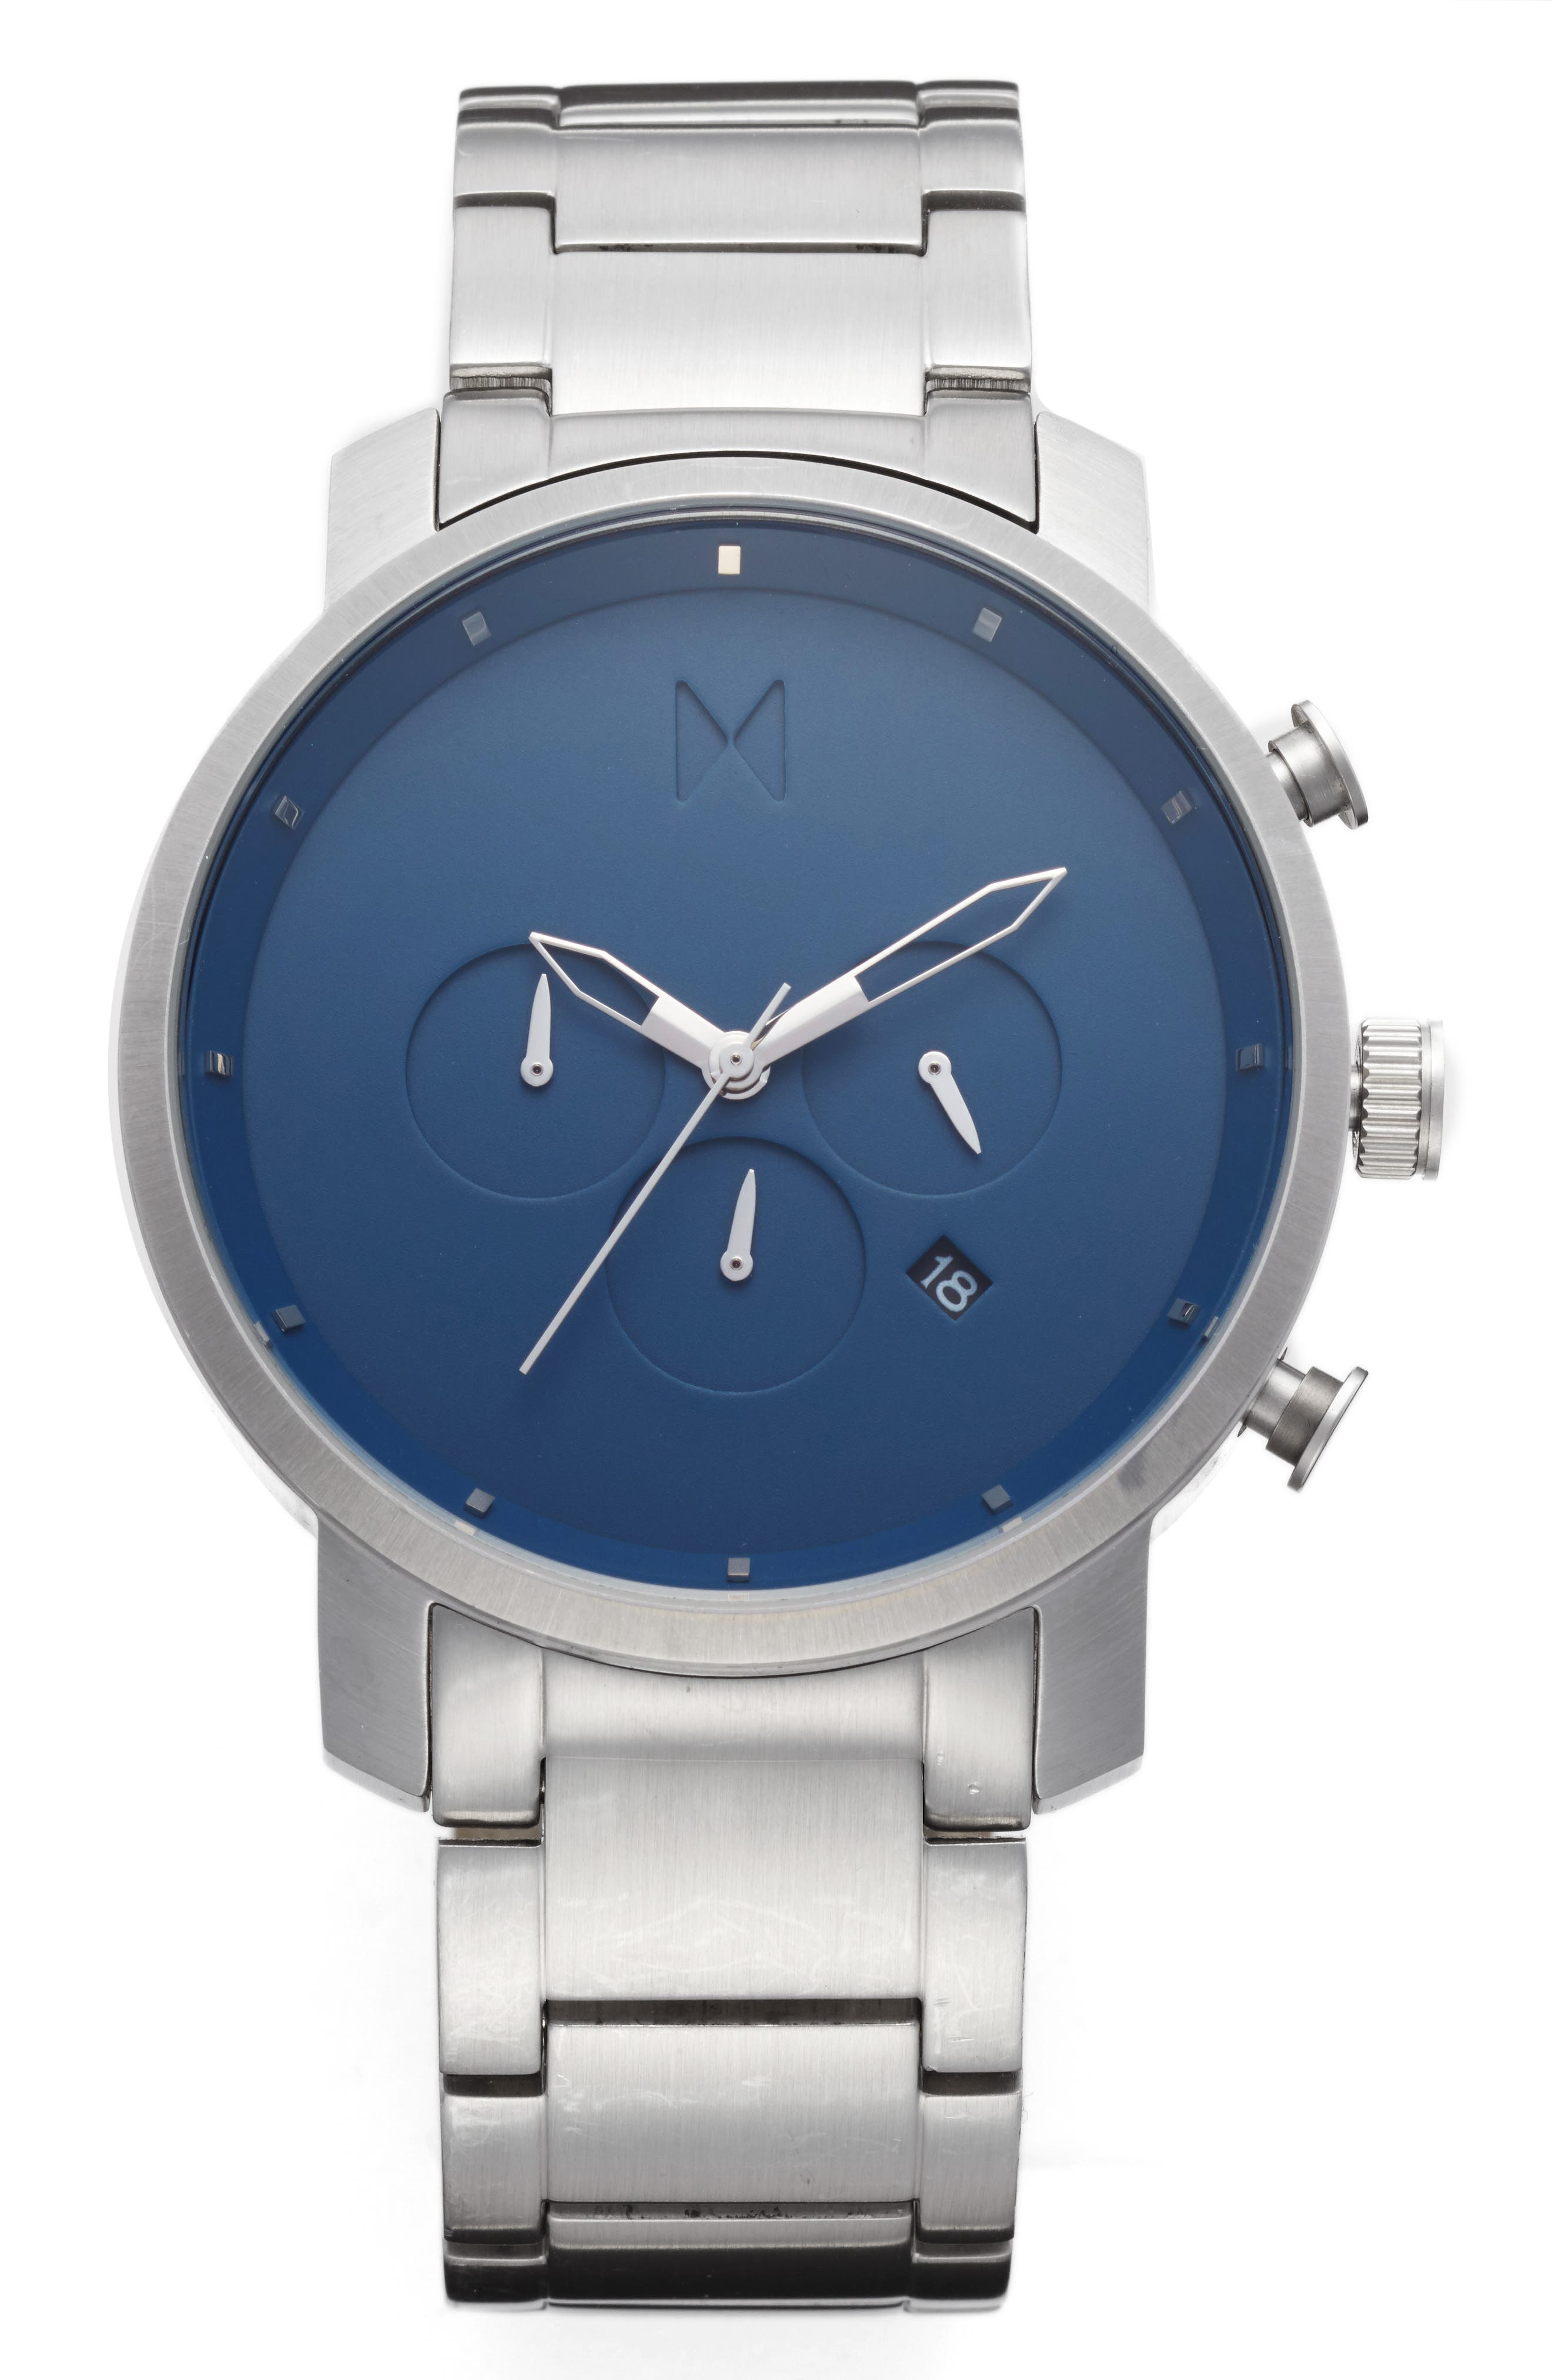 Main Image - MVMT Chronograph Bracelet Watch, 45mm (Nordstrom Exclusive)